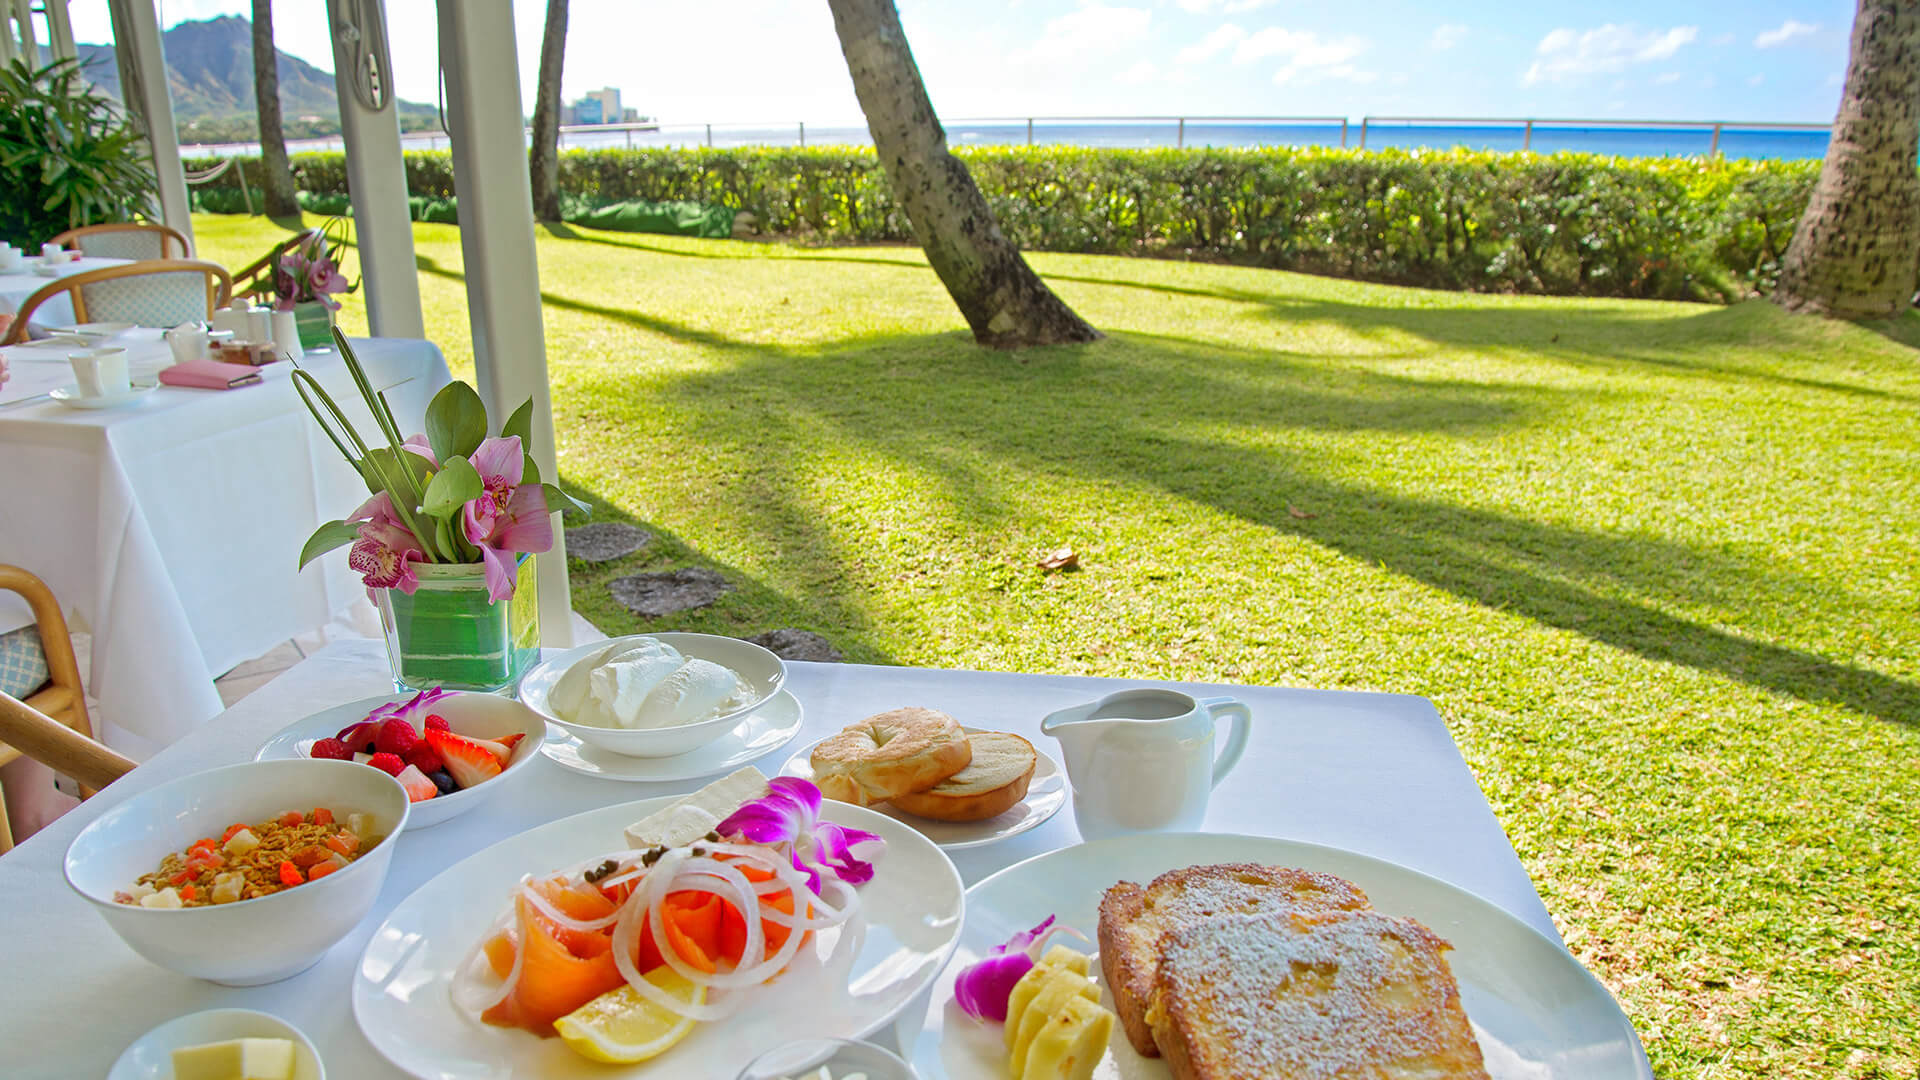 Table set for breakfast at Orchids with ocean views